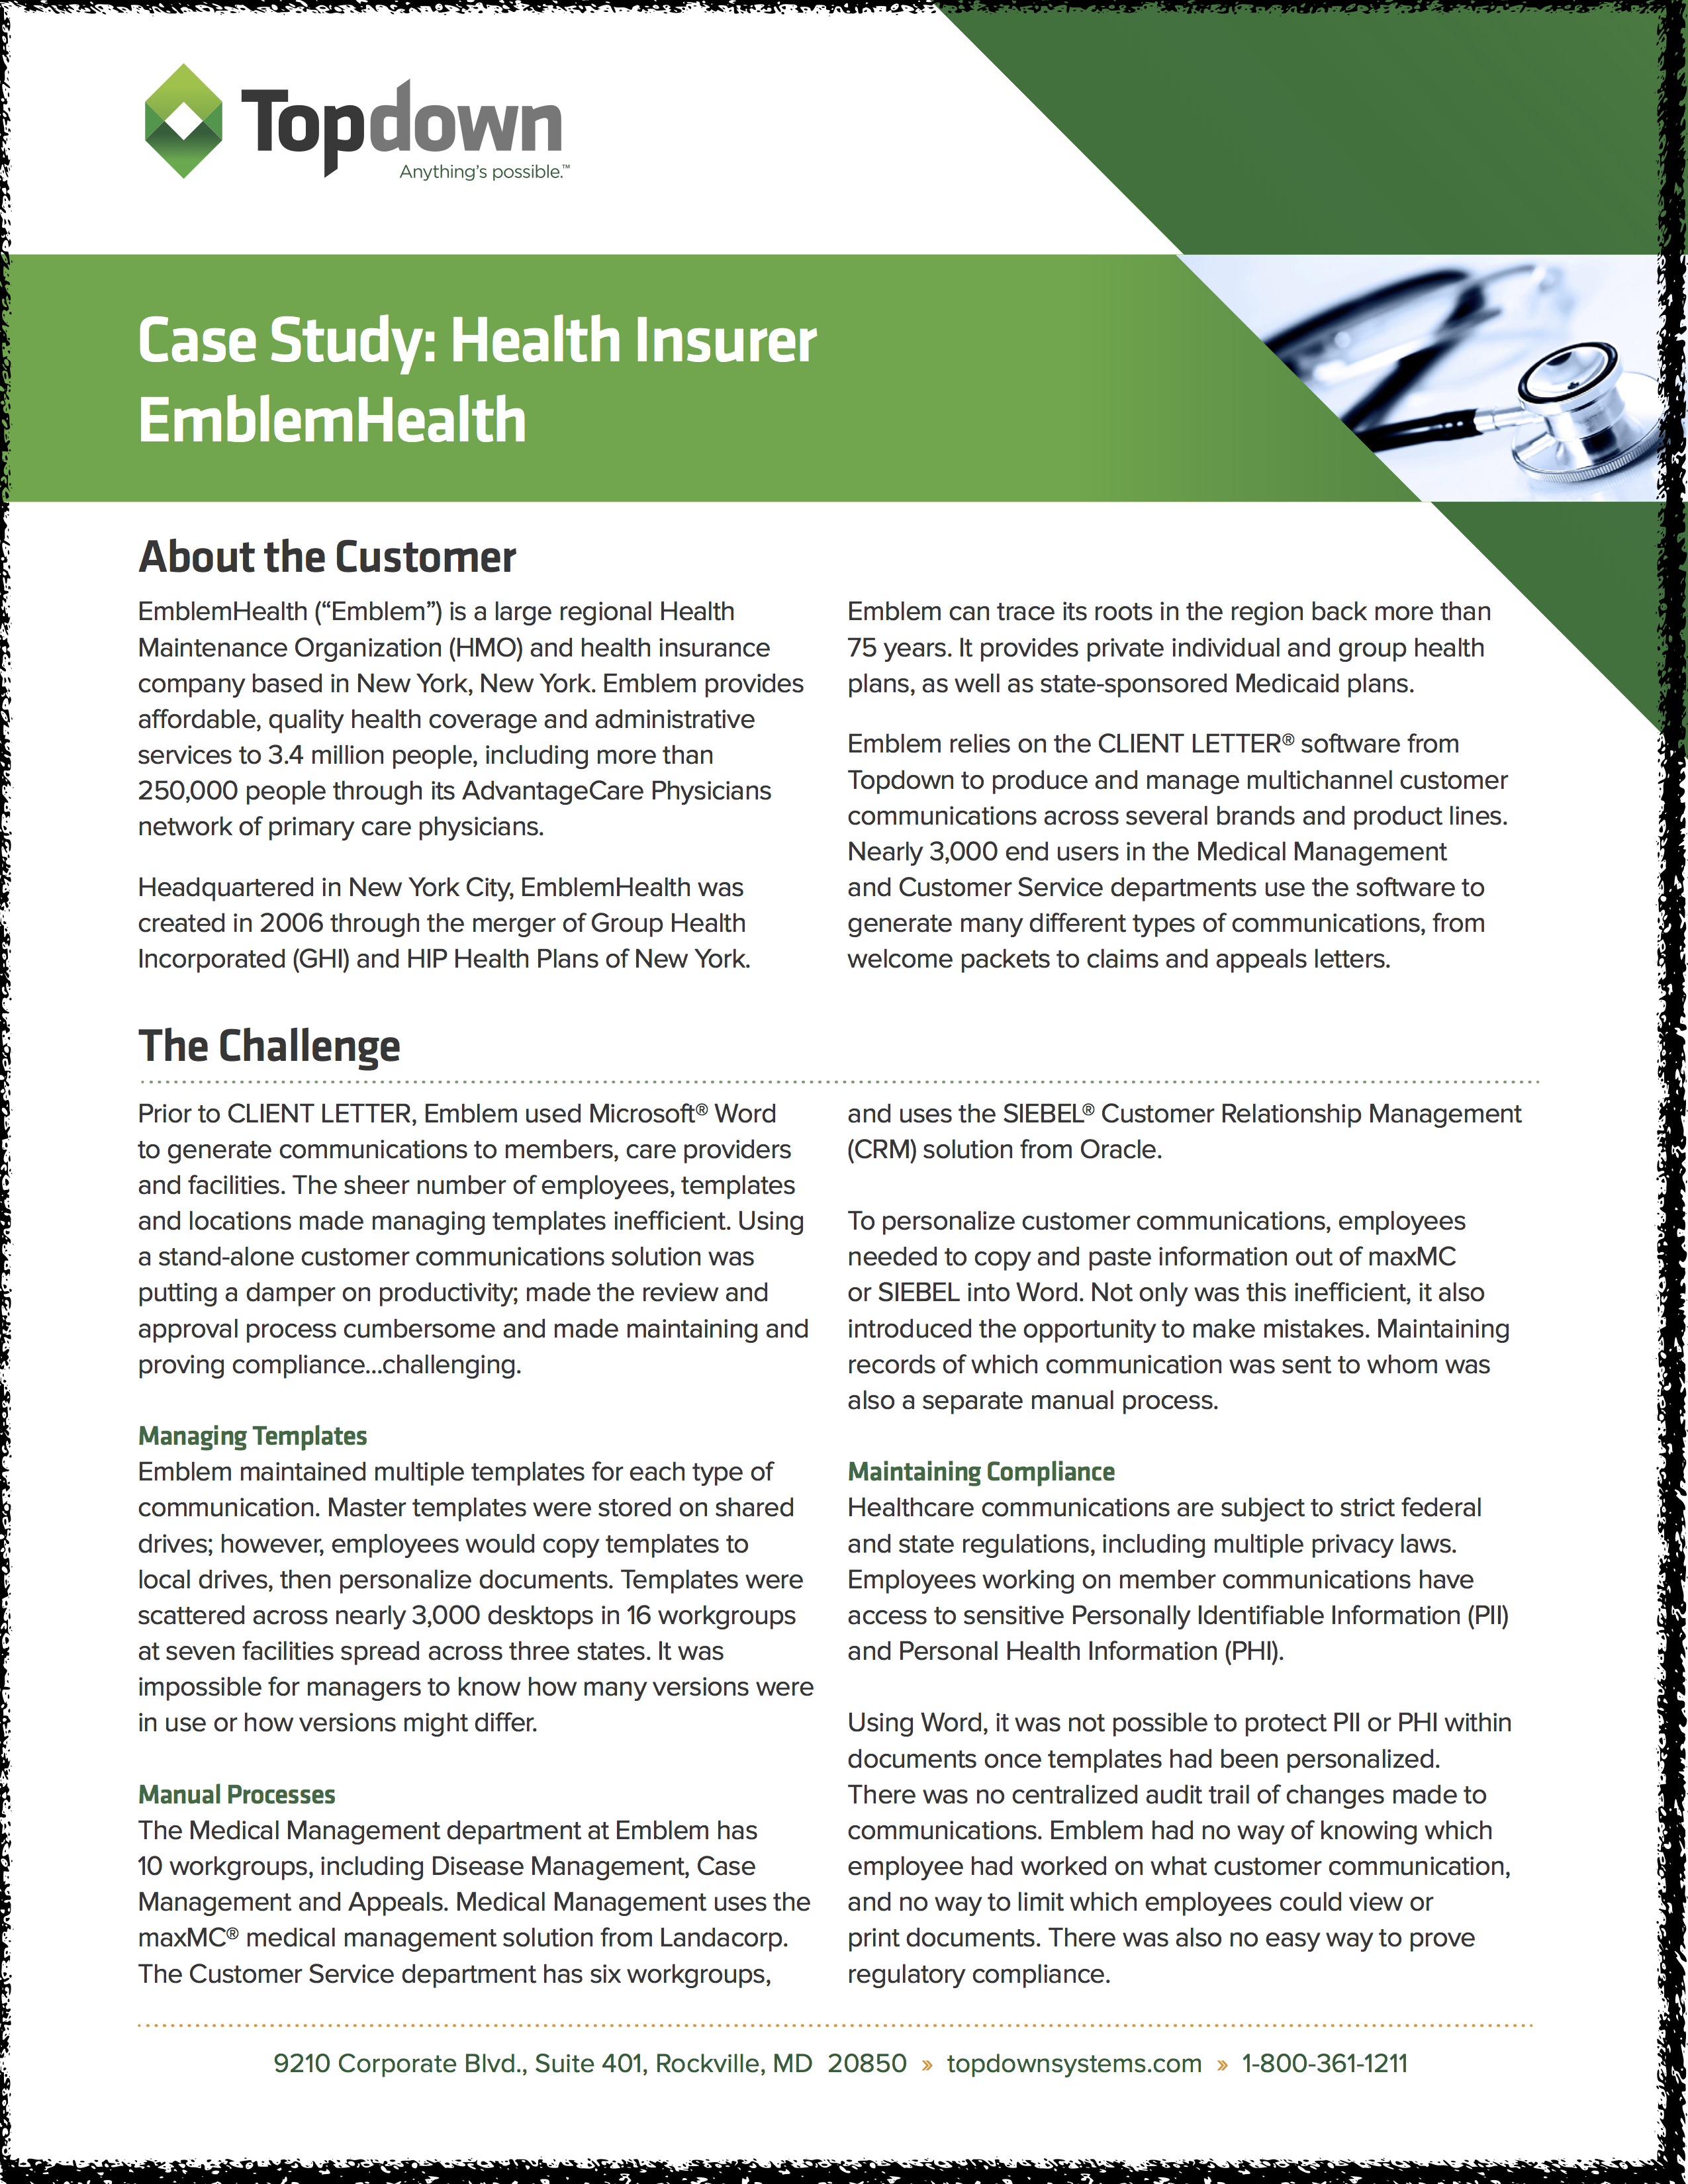 CLIENT LETTER case study on EmblemHealth